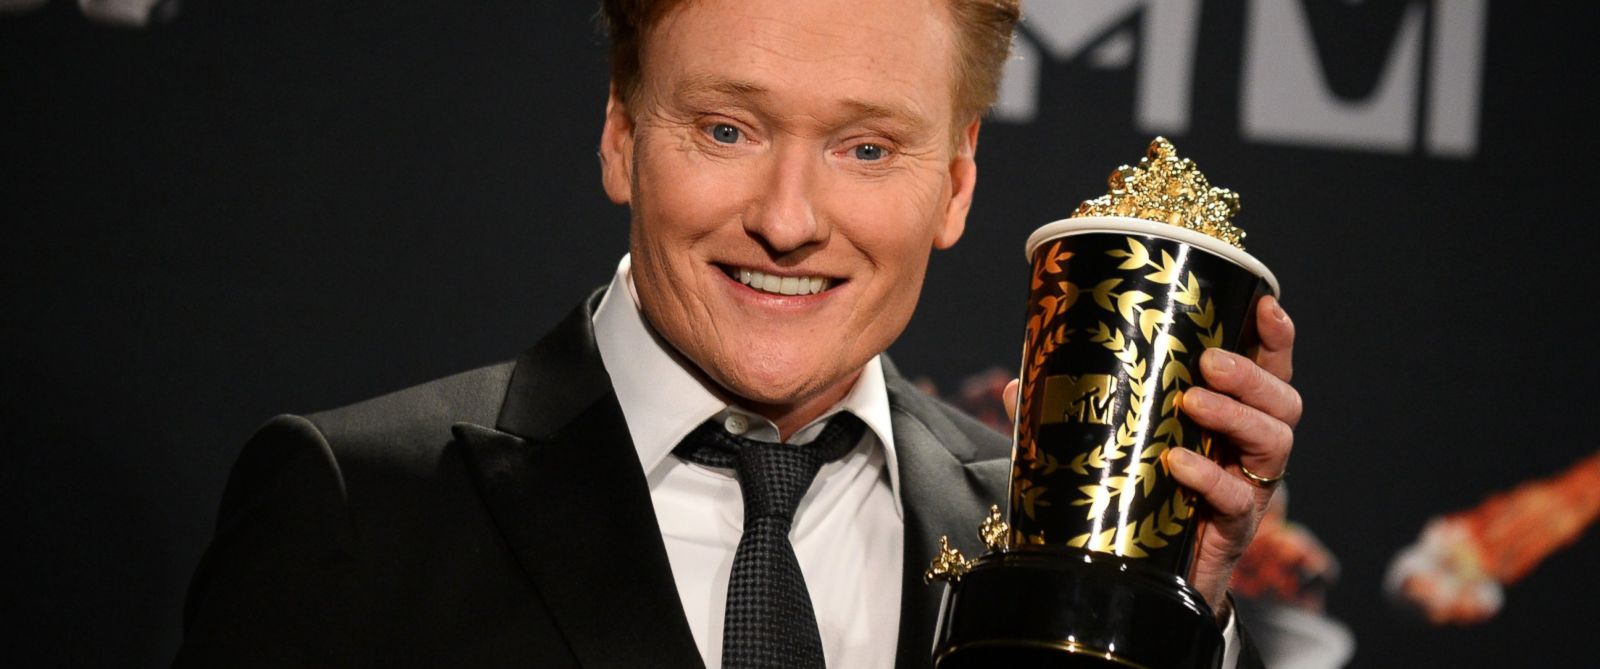 PHOTO: Conan OBrien poses in the press room at the MTV Movie Awards, April 13, 2014, at Nokia Theatre in Los Angeles.